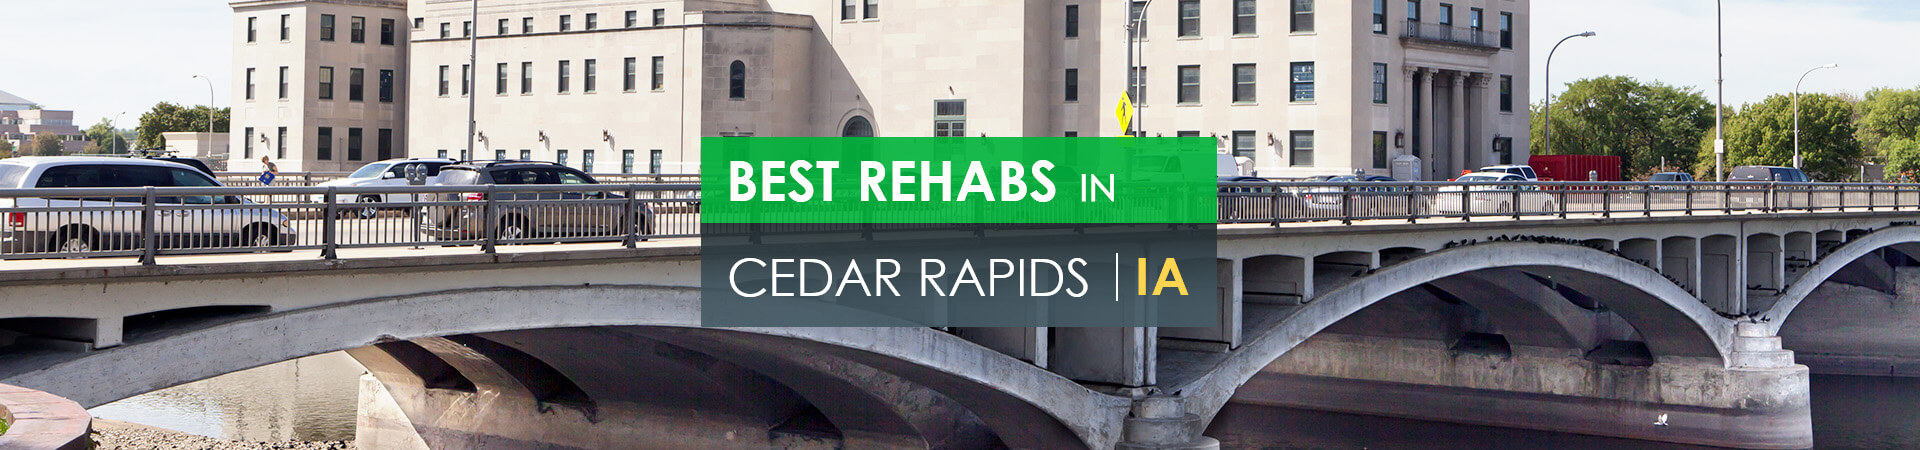 Best rehabs in Cedar Rapids, IA